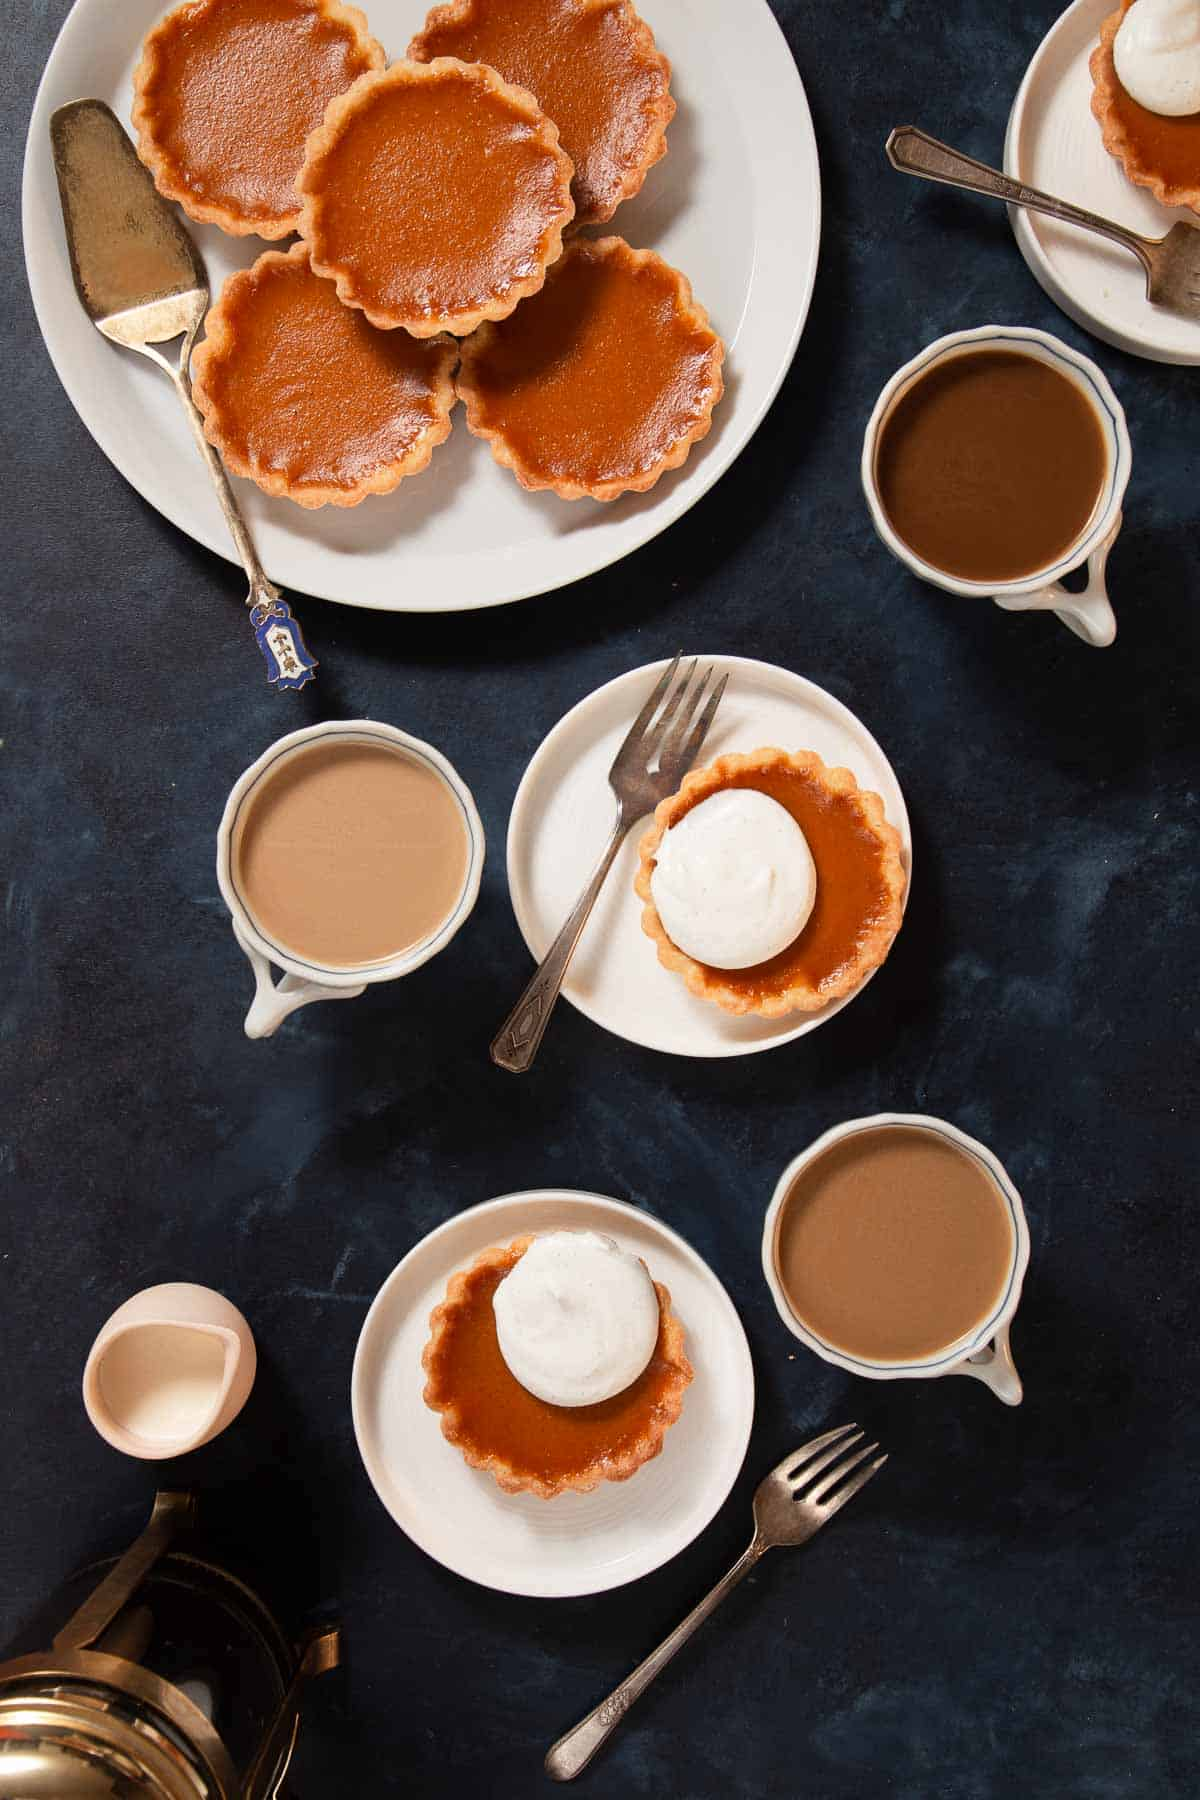 Serving mini pumpkin pies on white plates with coffee on the side